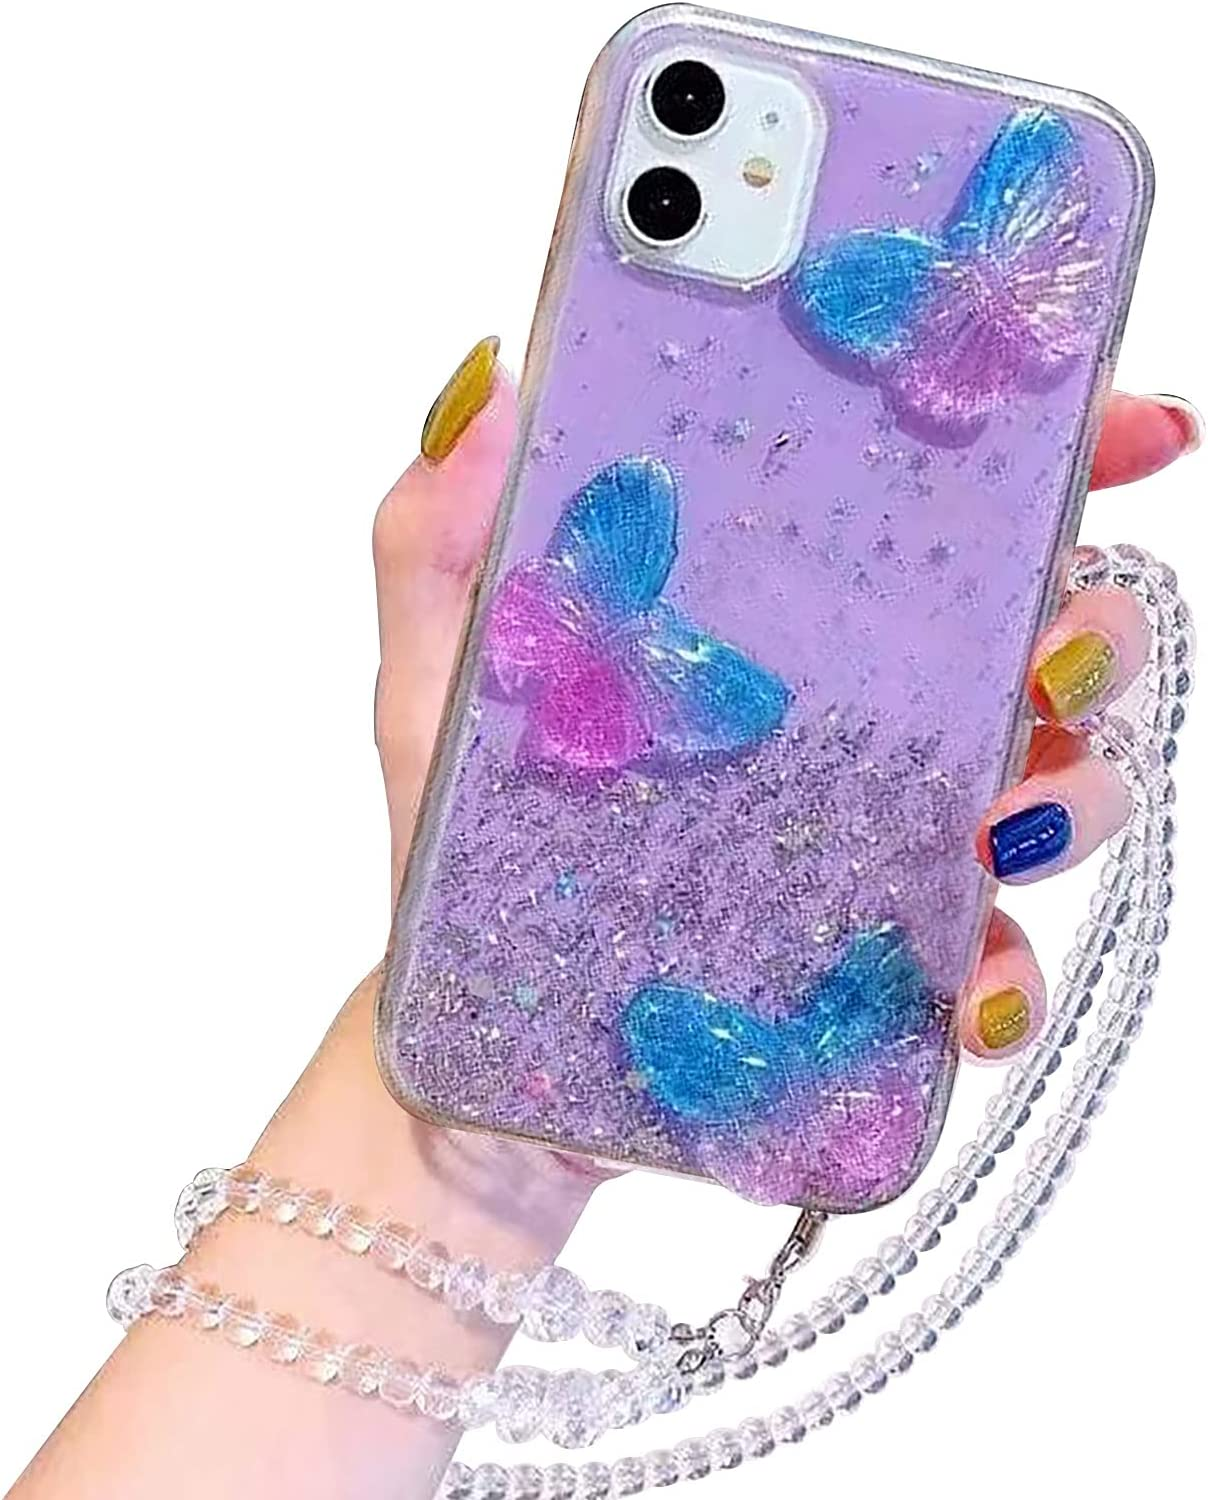 Herzzer Glitter Case for Samsung Galaxy A52 4G/5G,Cute Crystal Beauty Aesthetic Butterfly Shiny Stars Transparent Shockproof Soft TPU Bumper Bling Case with Crossbody Strap Neck Lanyard - Purple